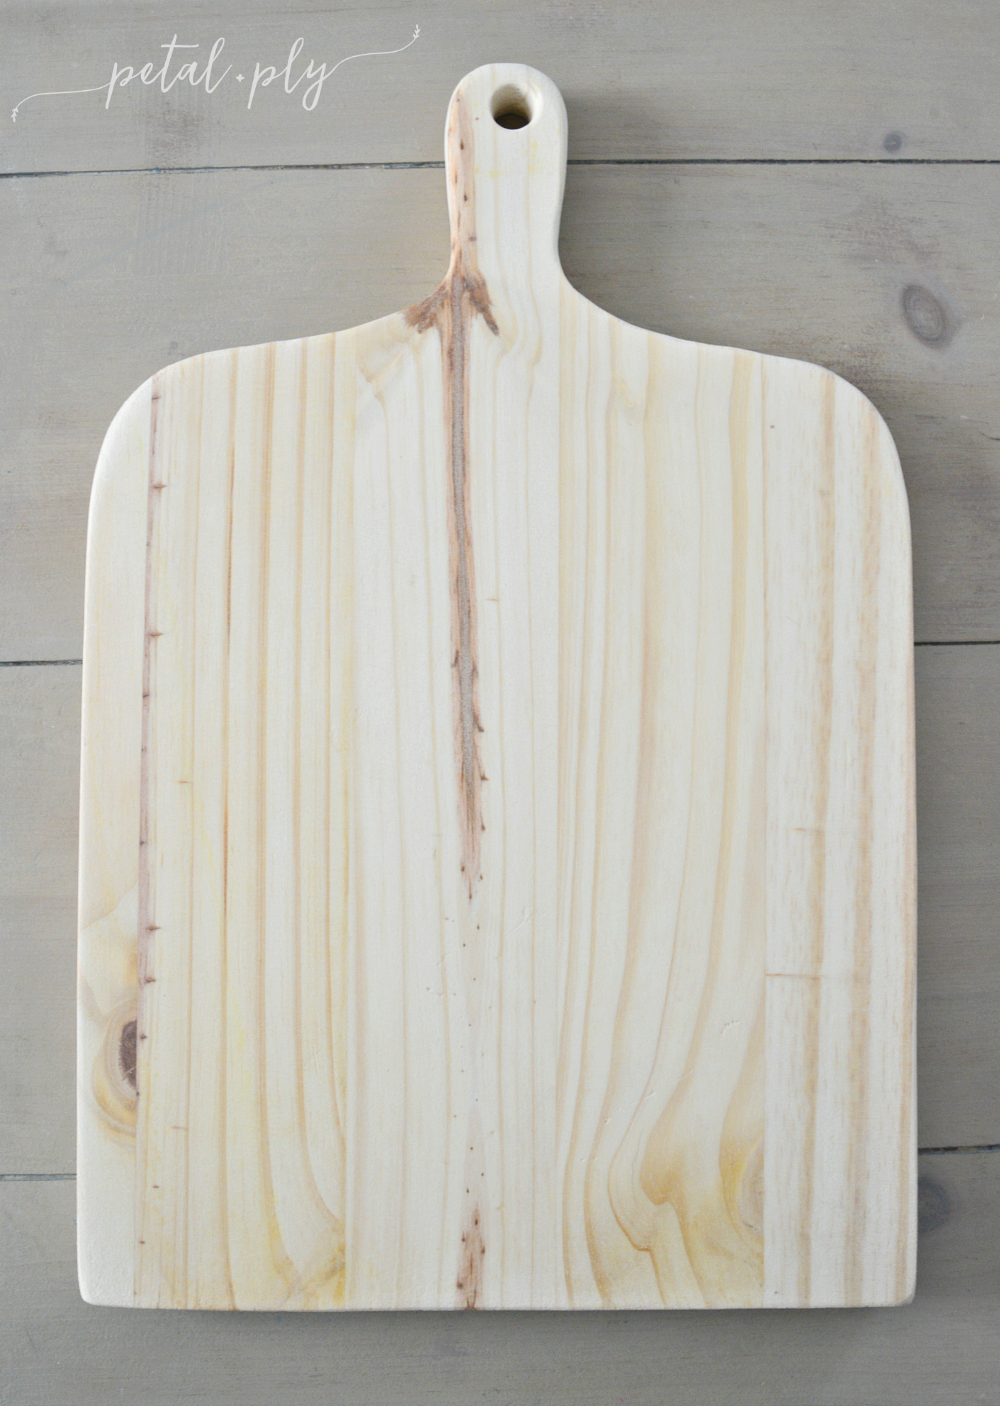 raw-wood-cutting-board-before